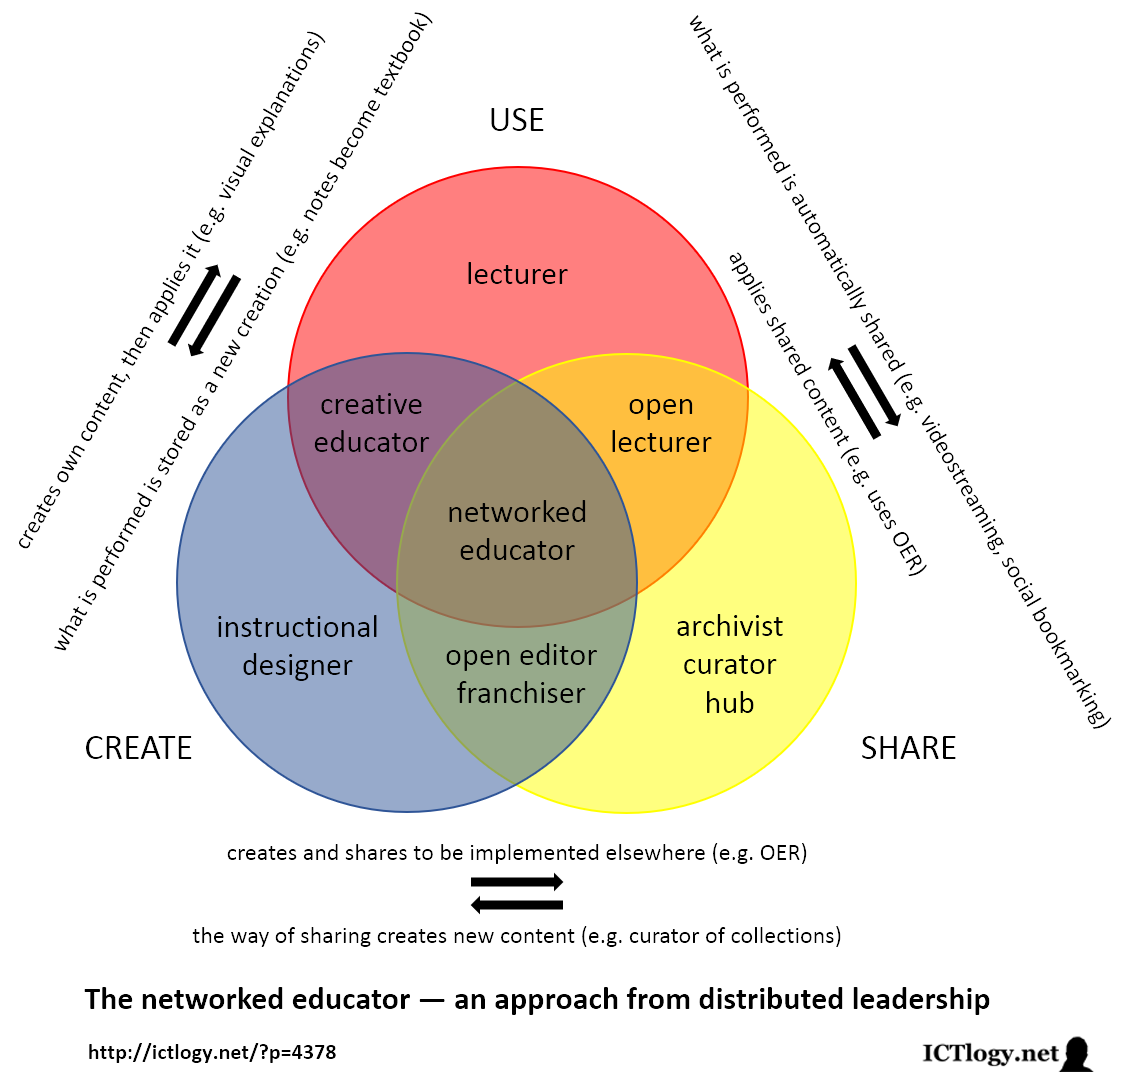 Scheme of the networked educator — an approach from distributed leadership